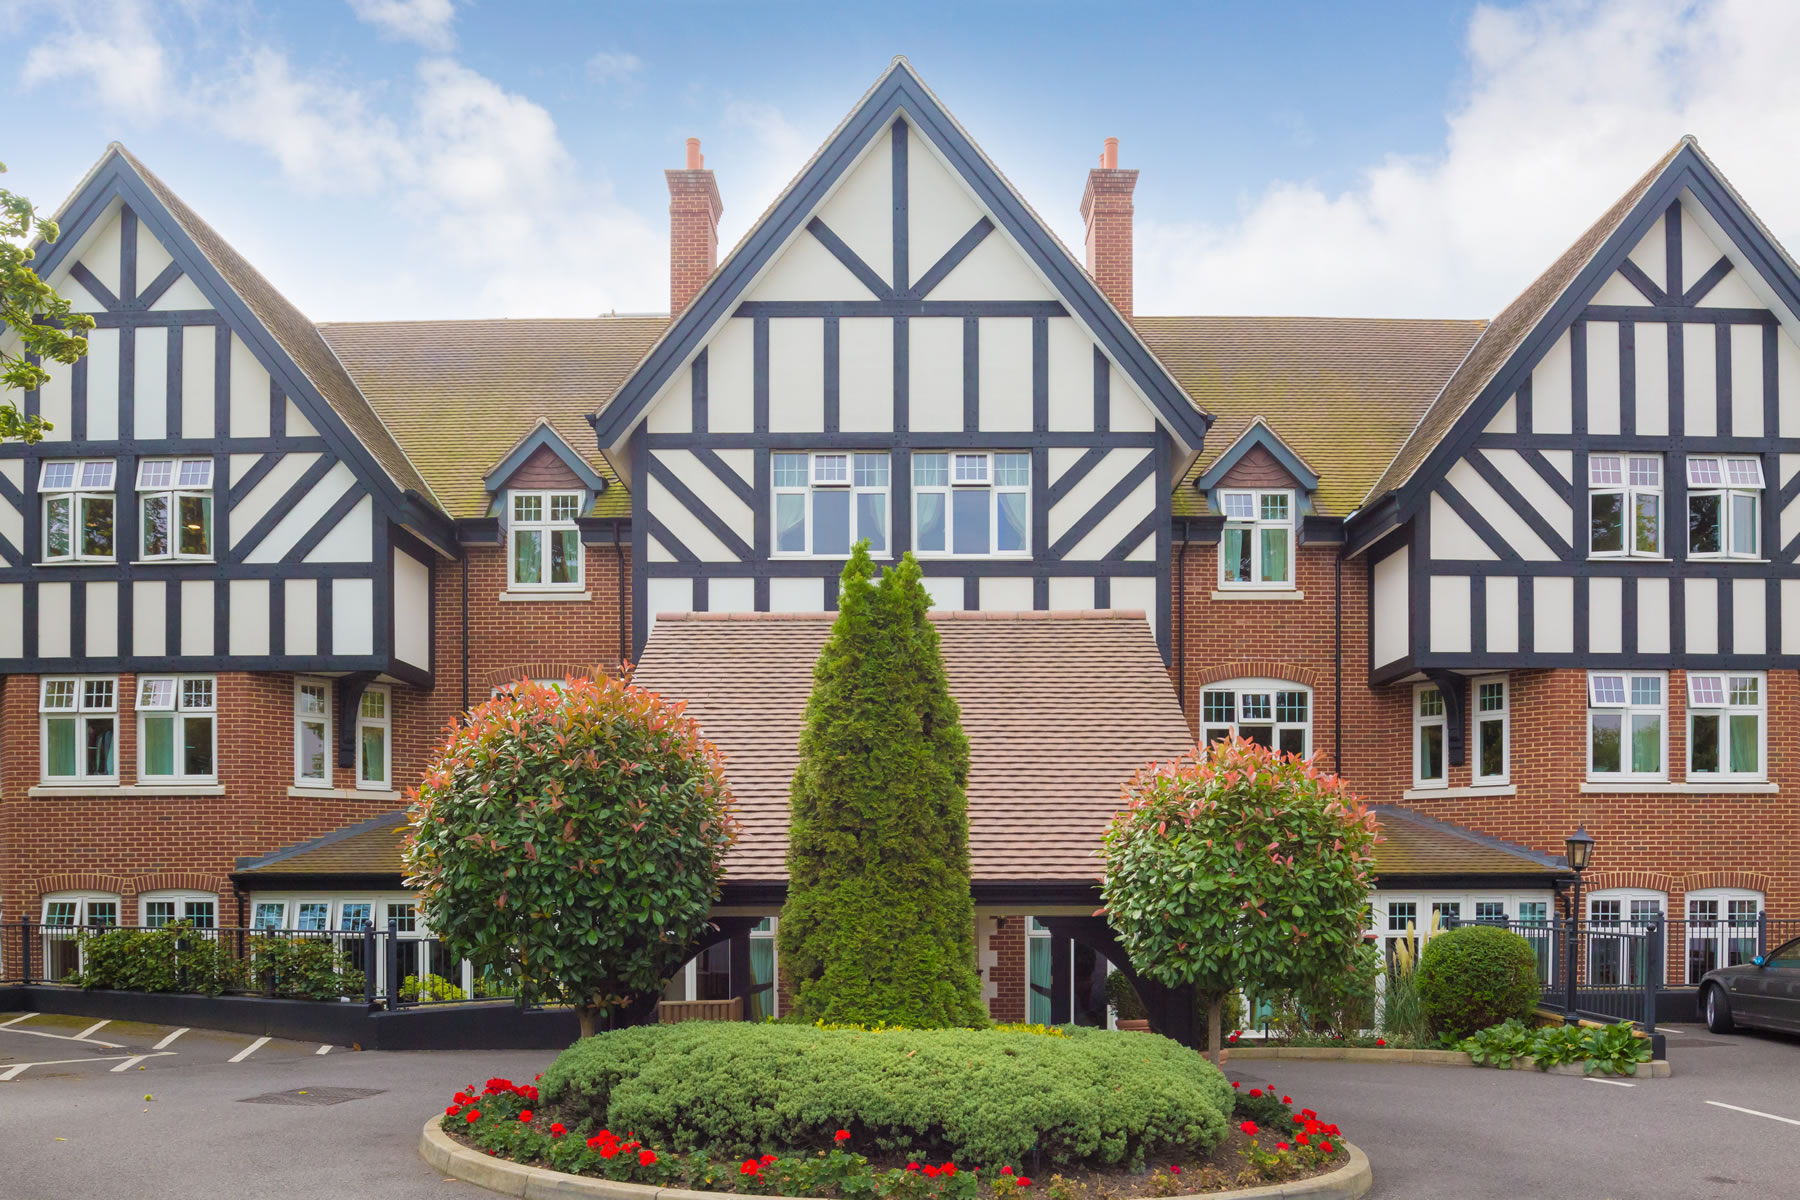 Sunrise Care Home Weybridge provide Dementia and Alzheimers Care